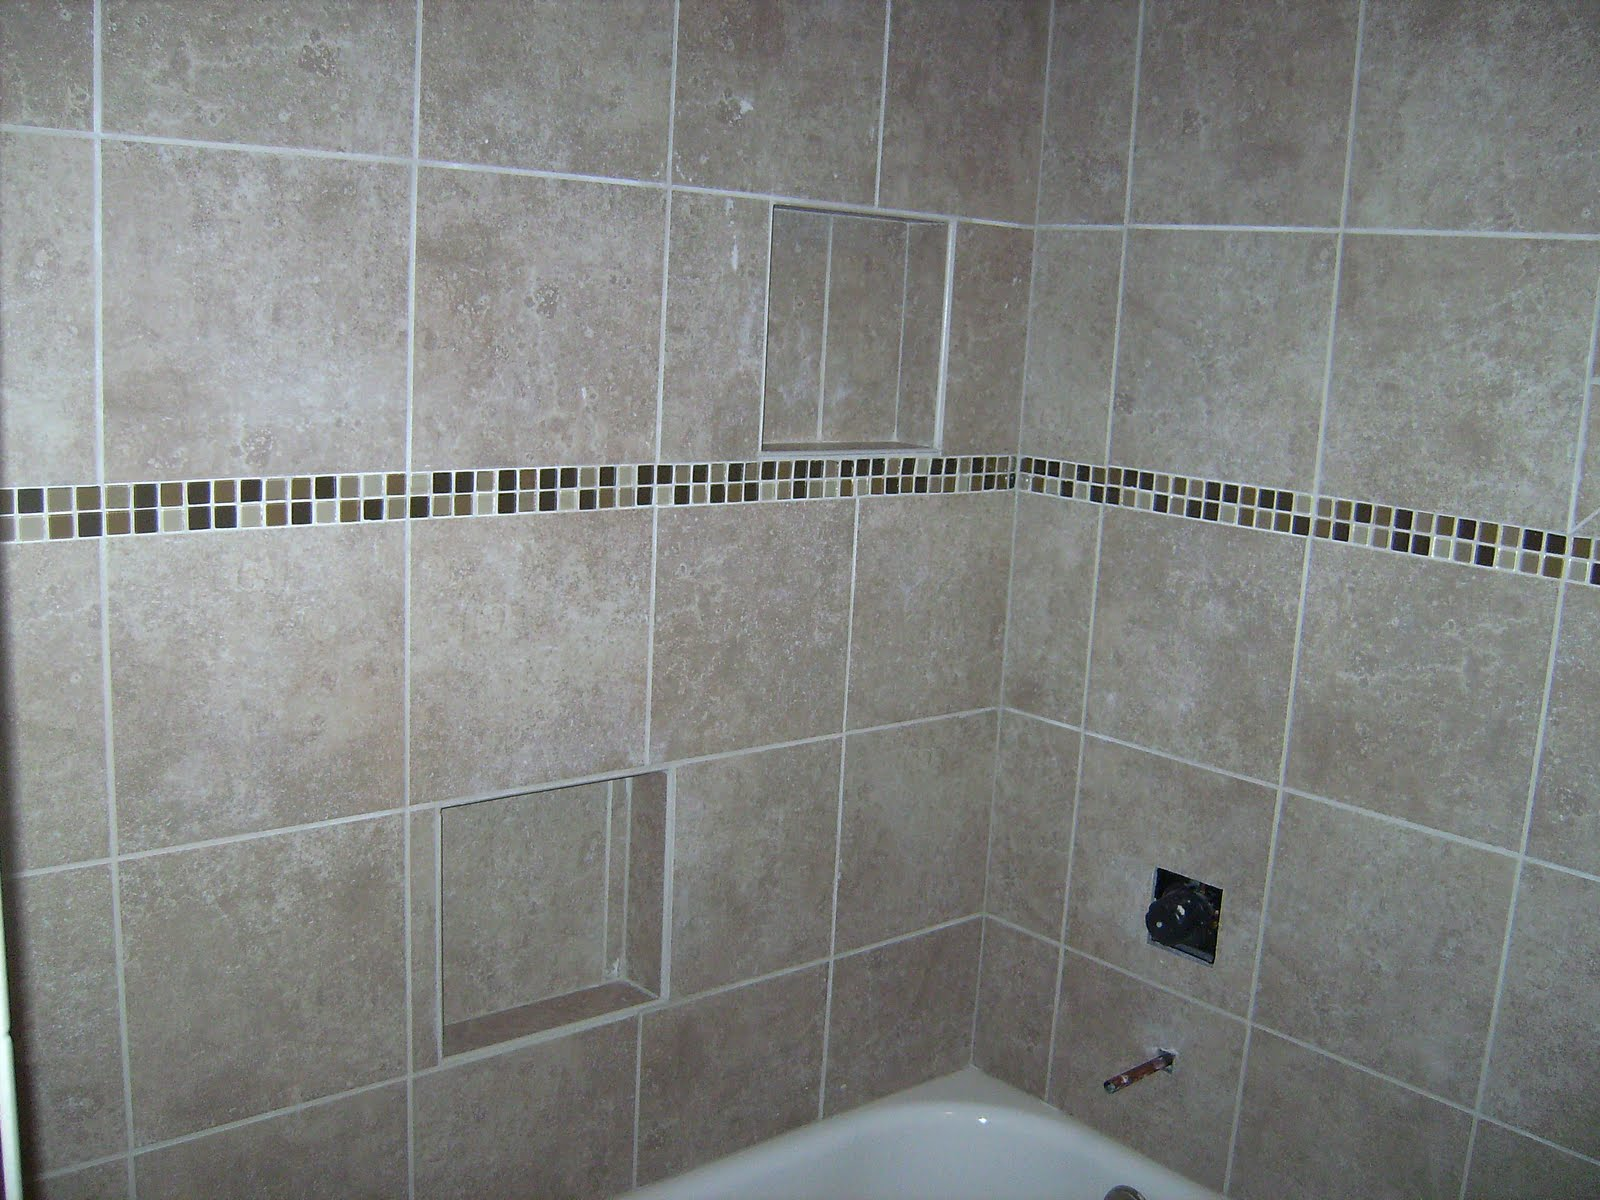 Knapp tile and flooring inc bathroom walls and tub surround for Tile shower surround